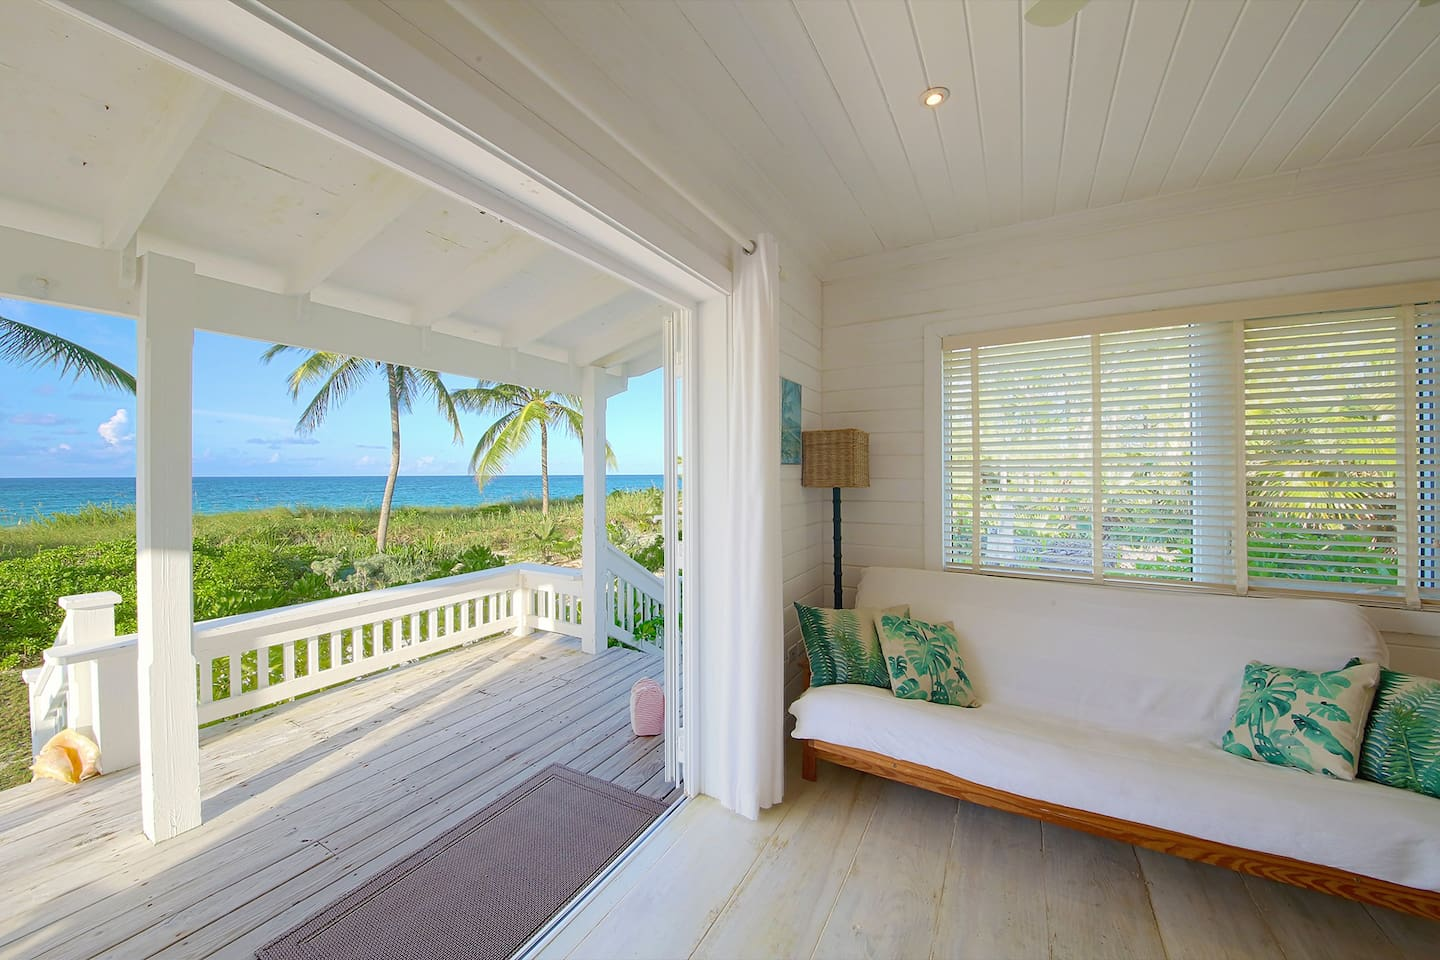 Expansive ocean views from the beachfront cottage